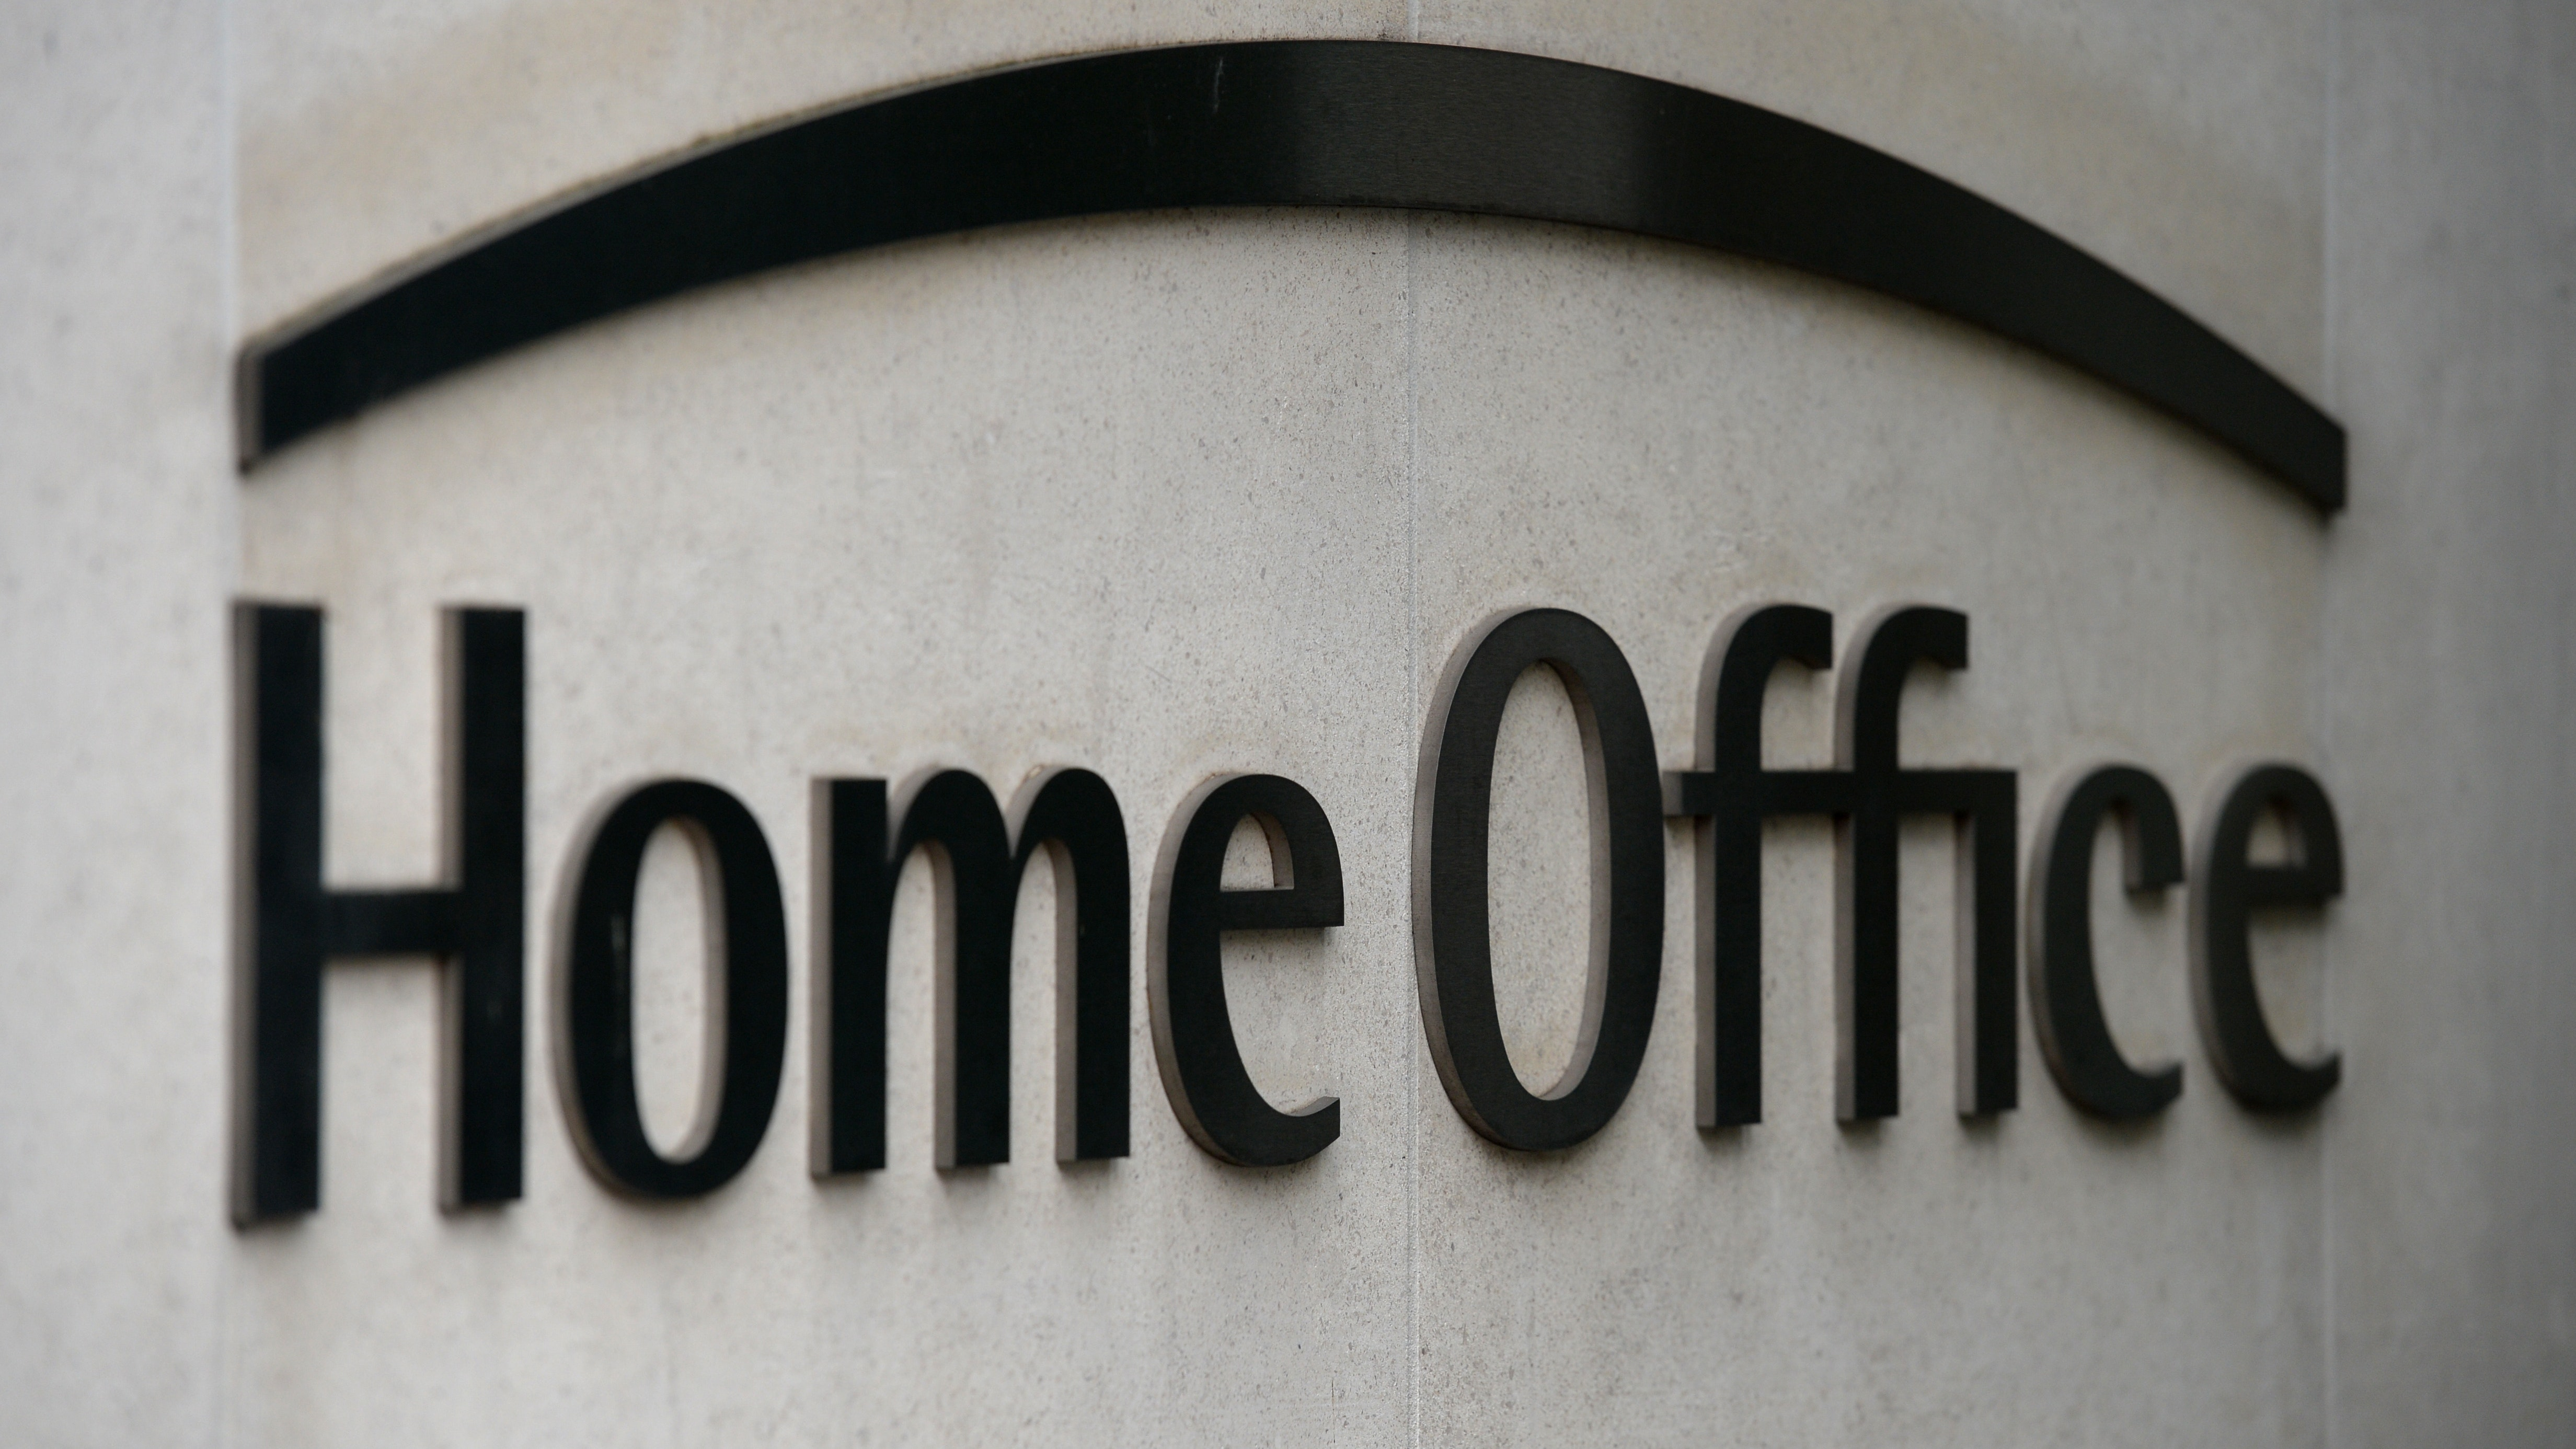 Home Office rejects calls to regulate sharia courts in Britain